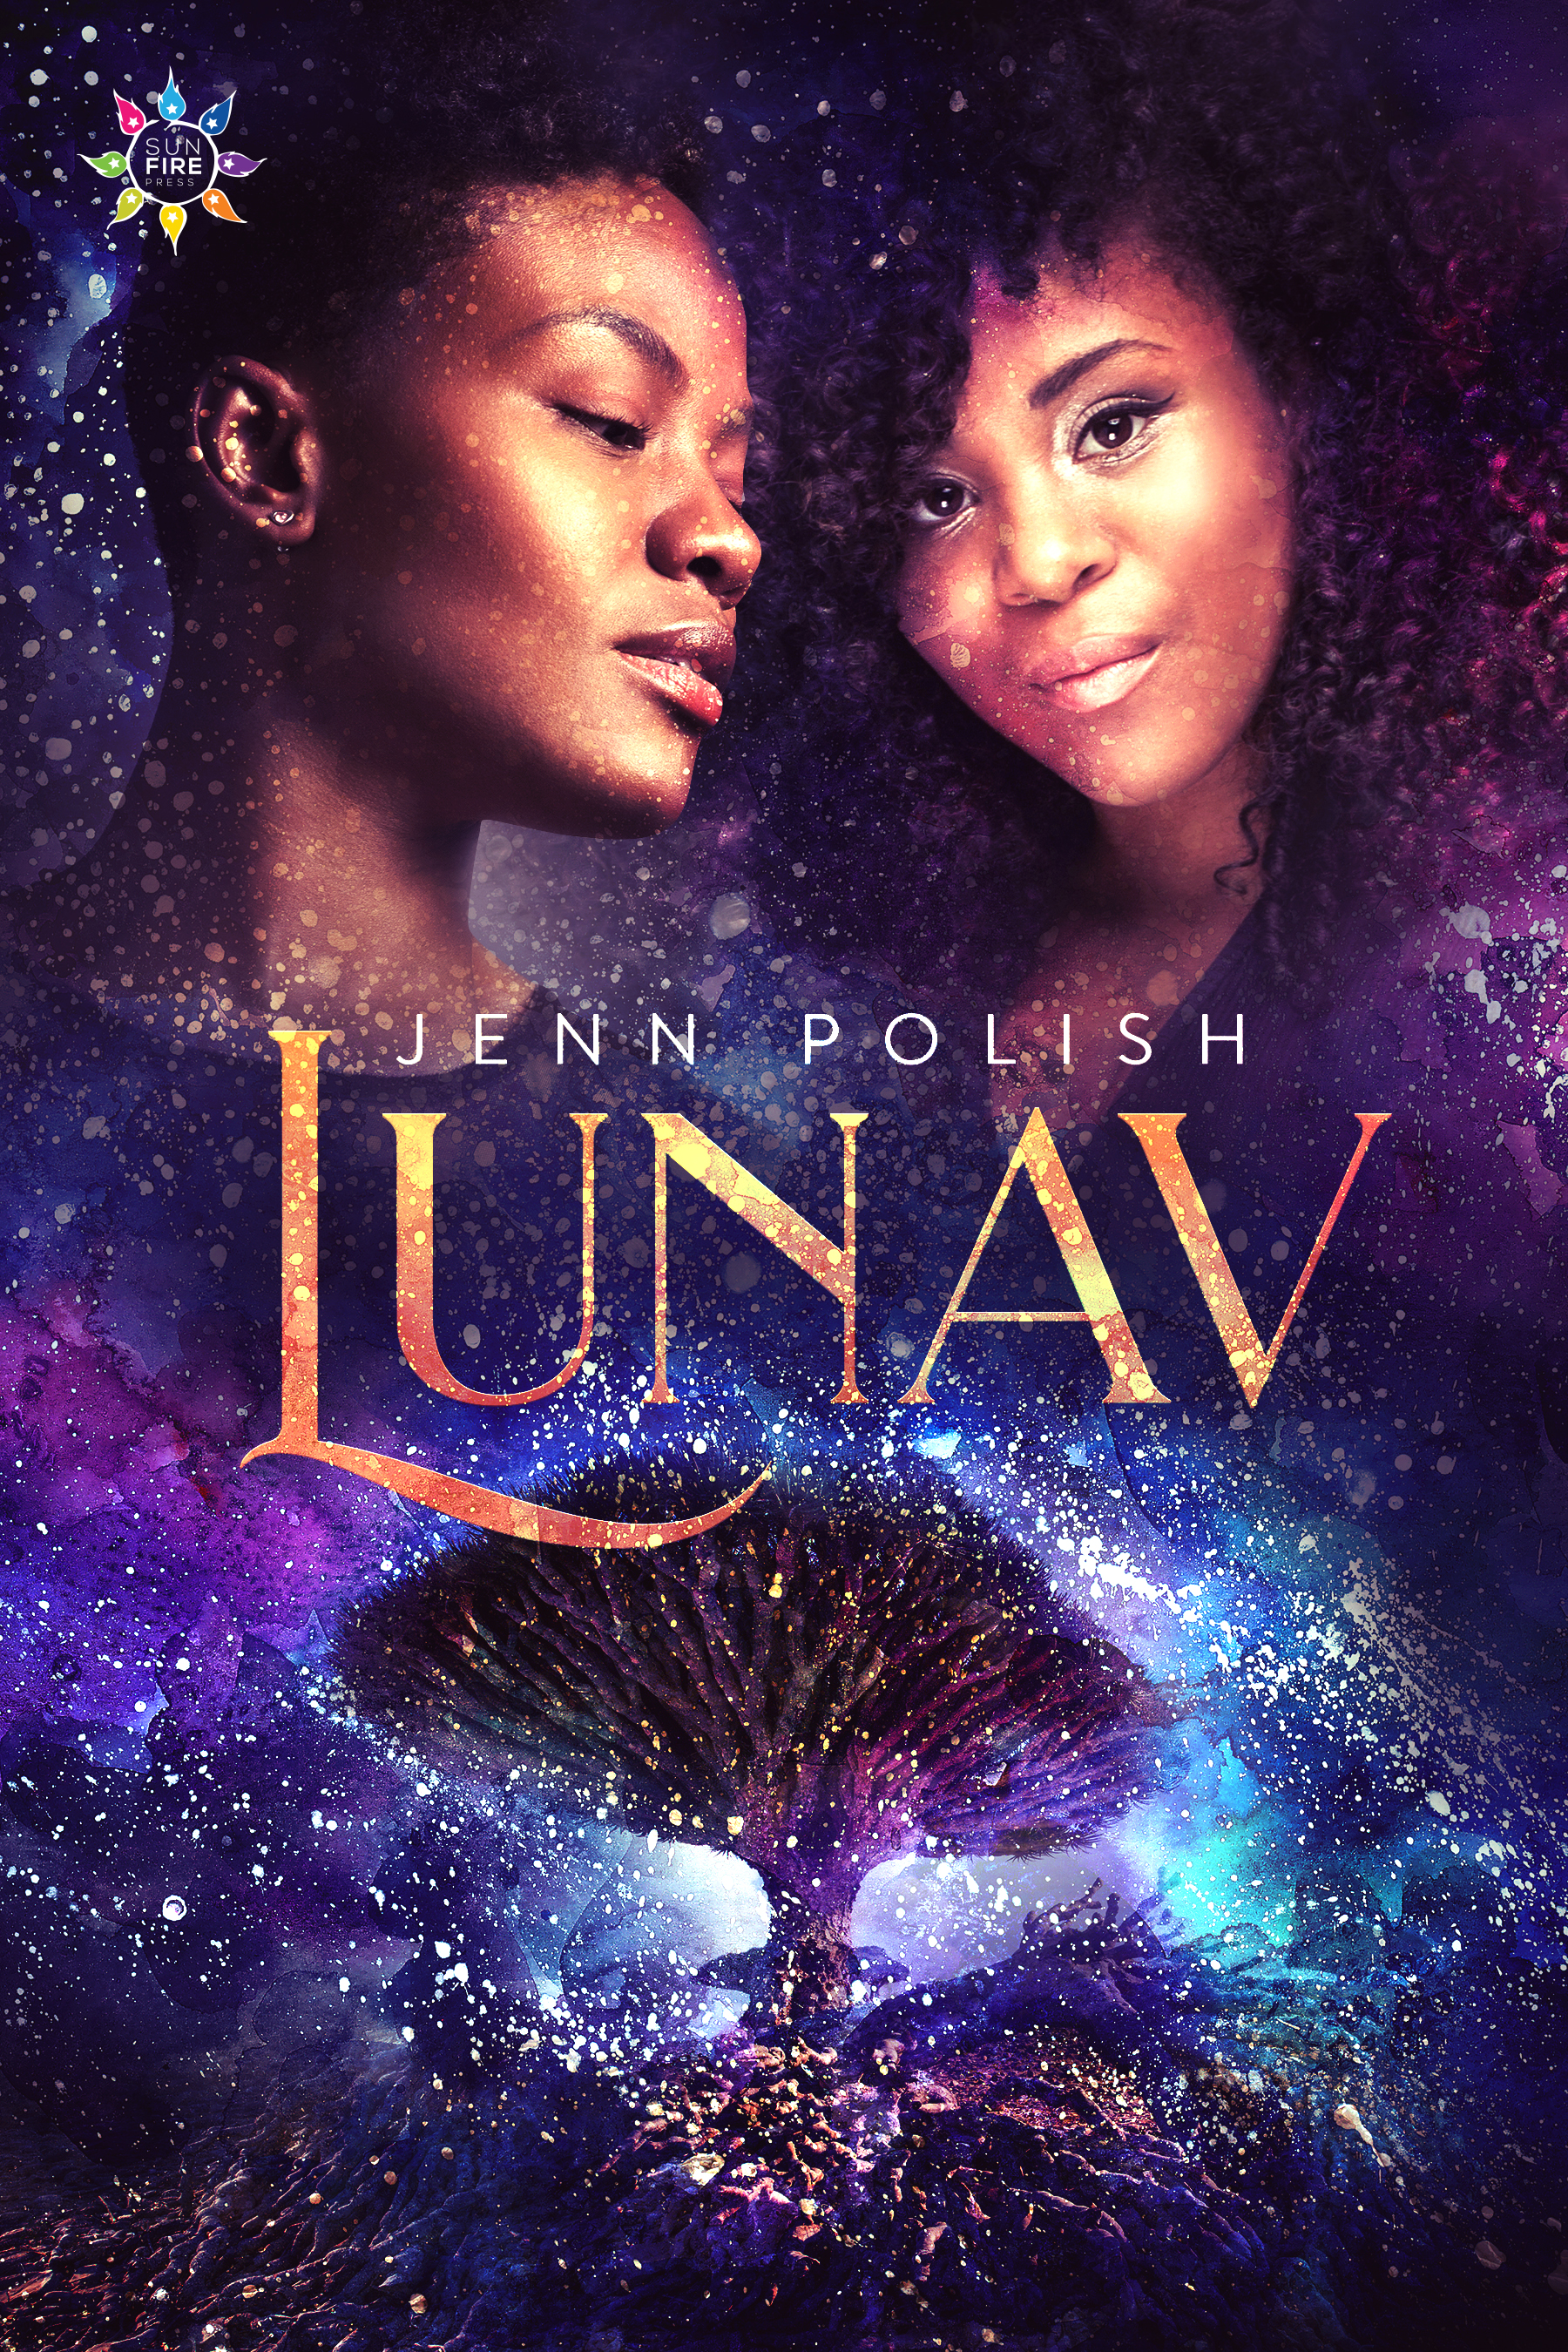 LUNAV cover: two young Black women's faces (the boyish woman looking down and away, Sadie, is on the left; the femmey woman looking directly at the viewer, Evelyn, is on the right) are studded with stars, just above the title (LUNAV) and author's name (Jenn Polish), with stars also glowing all around a dragon tree named Jorbam.